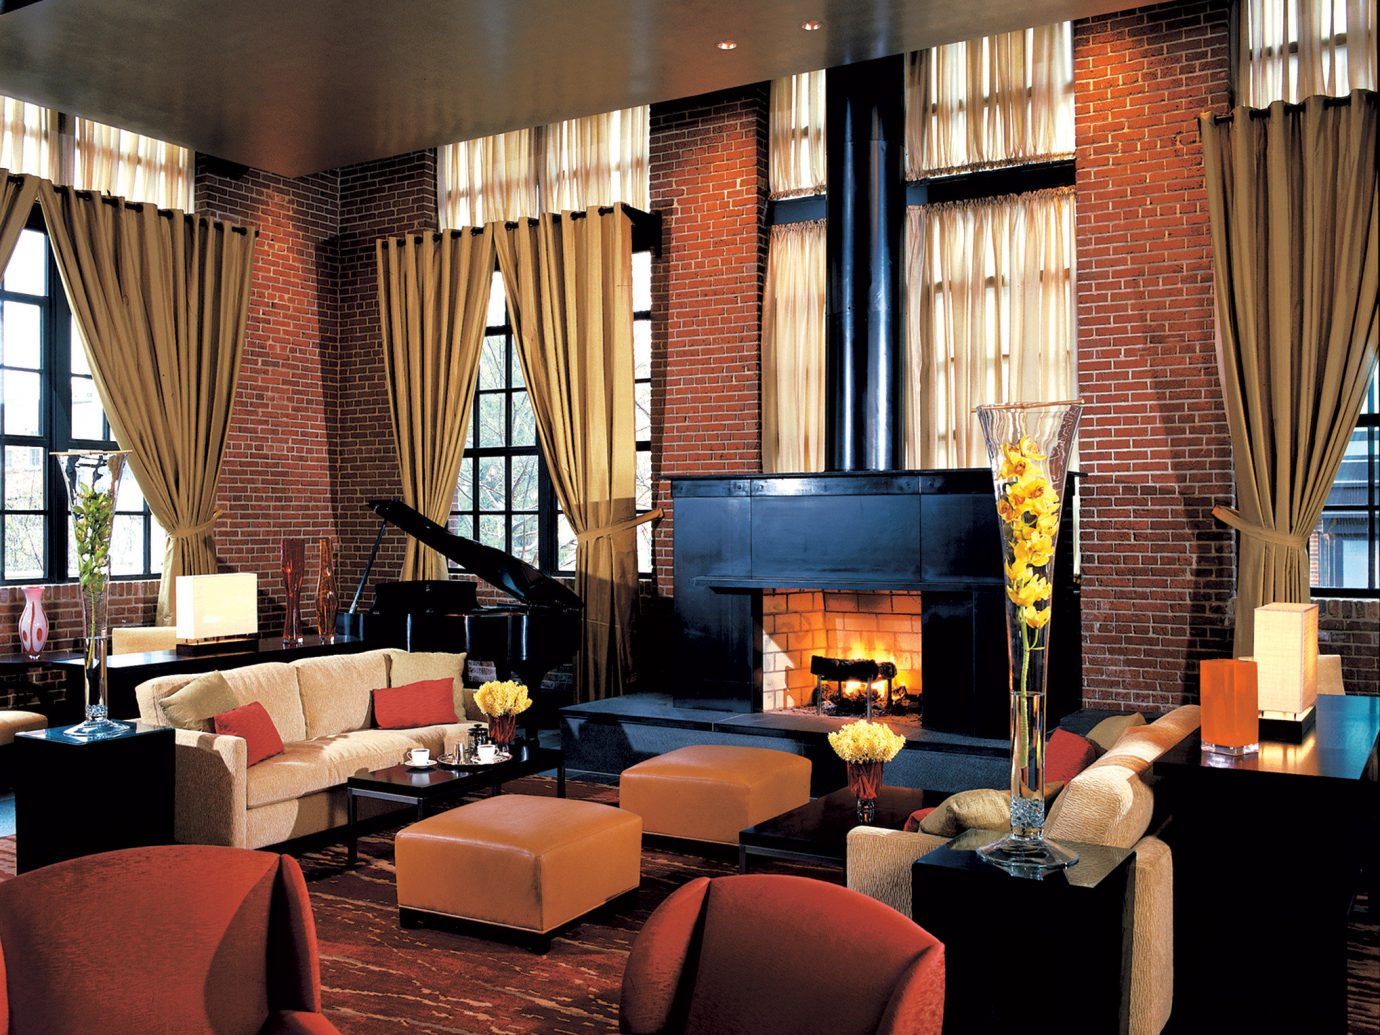 Boutique Hotels Fireplace Hotels Living Lounge Luxury Modern indoor room window ceiling living room Lobby interior design restaurant furniture estate home Bar Design Suite window covering area decorated several